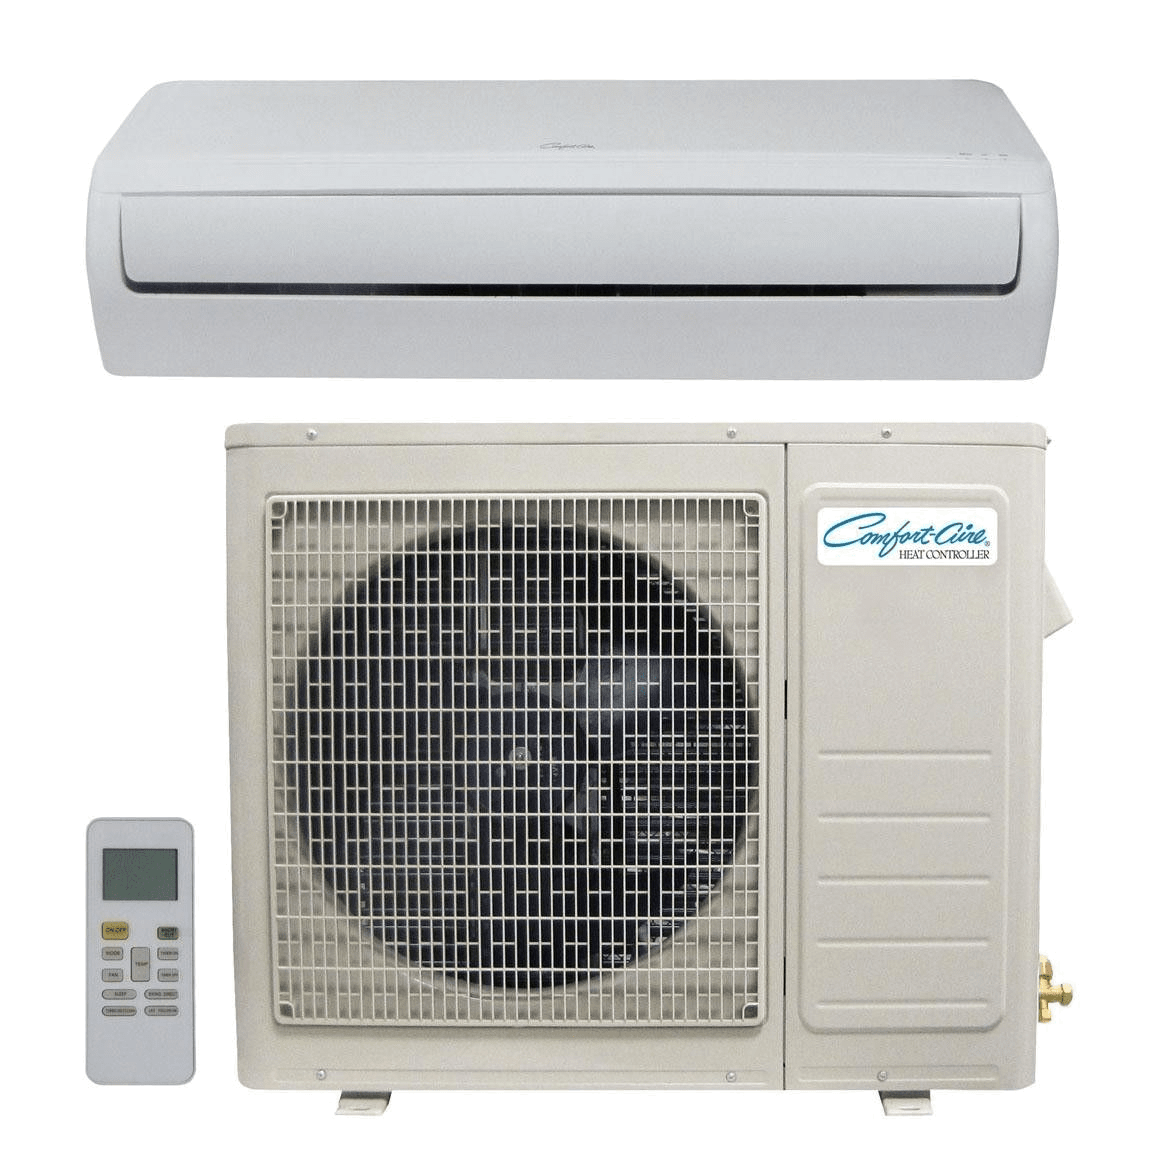 Comfort-Aire DV Series 18,000 BTU Mini Split System co3777k